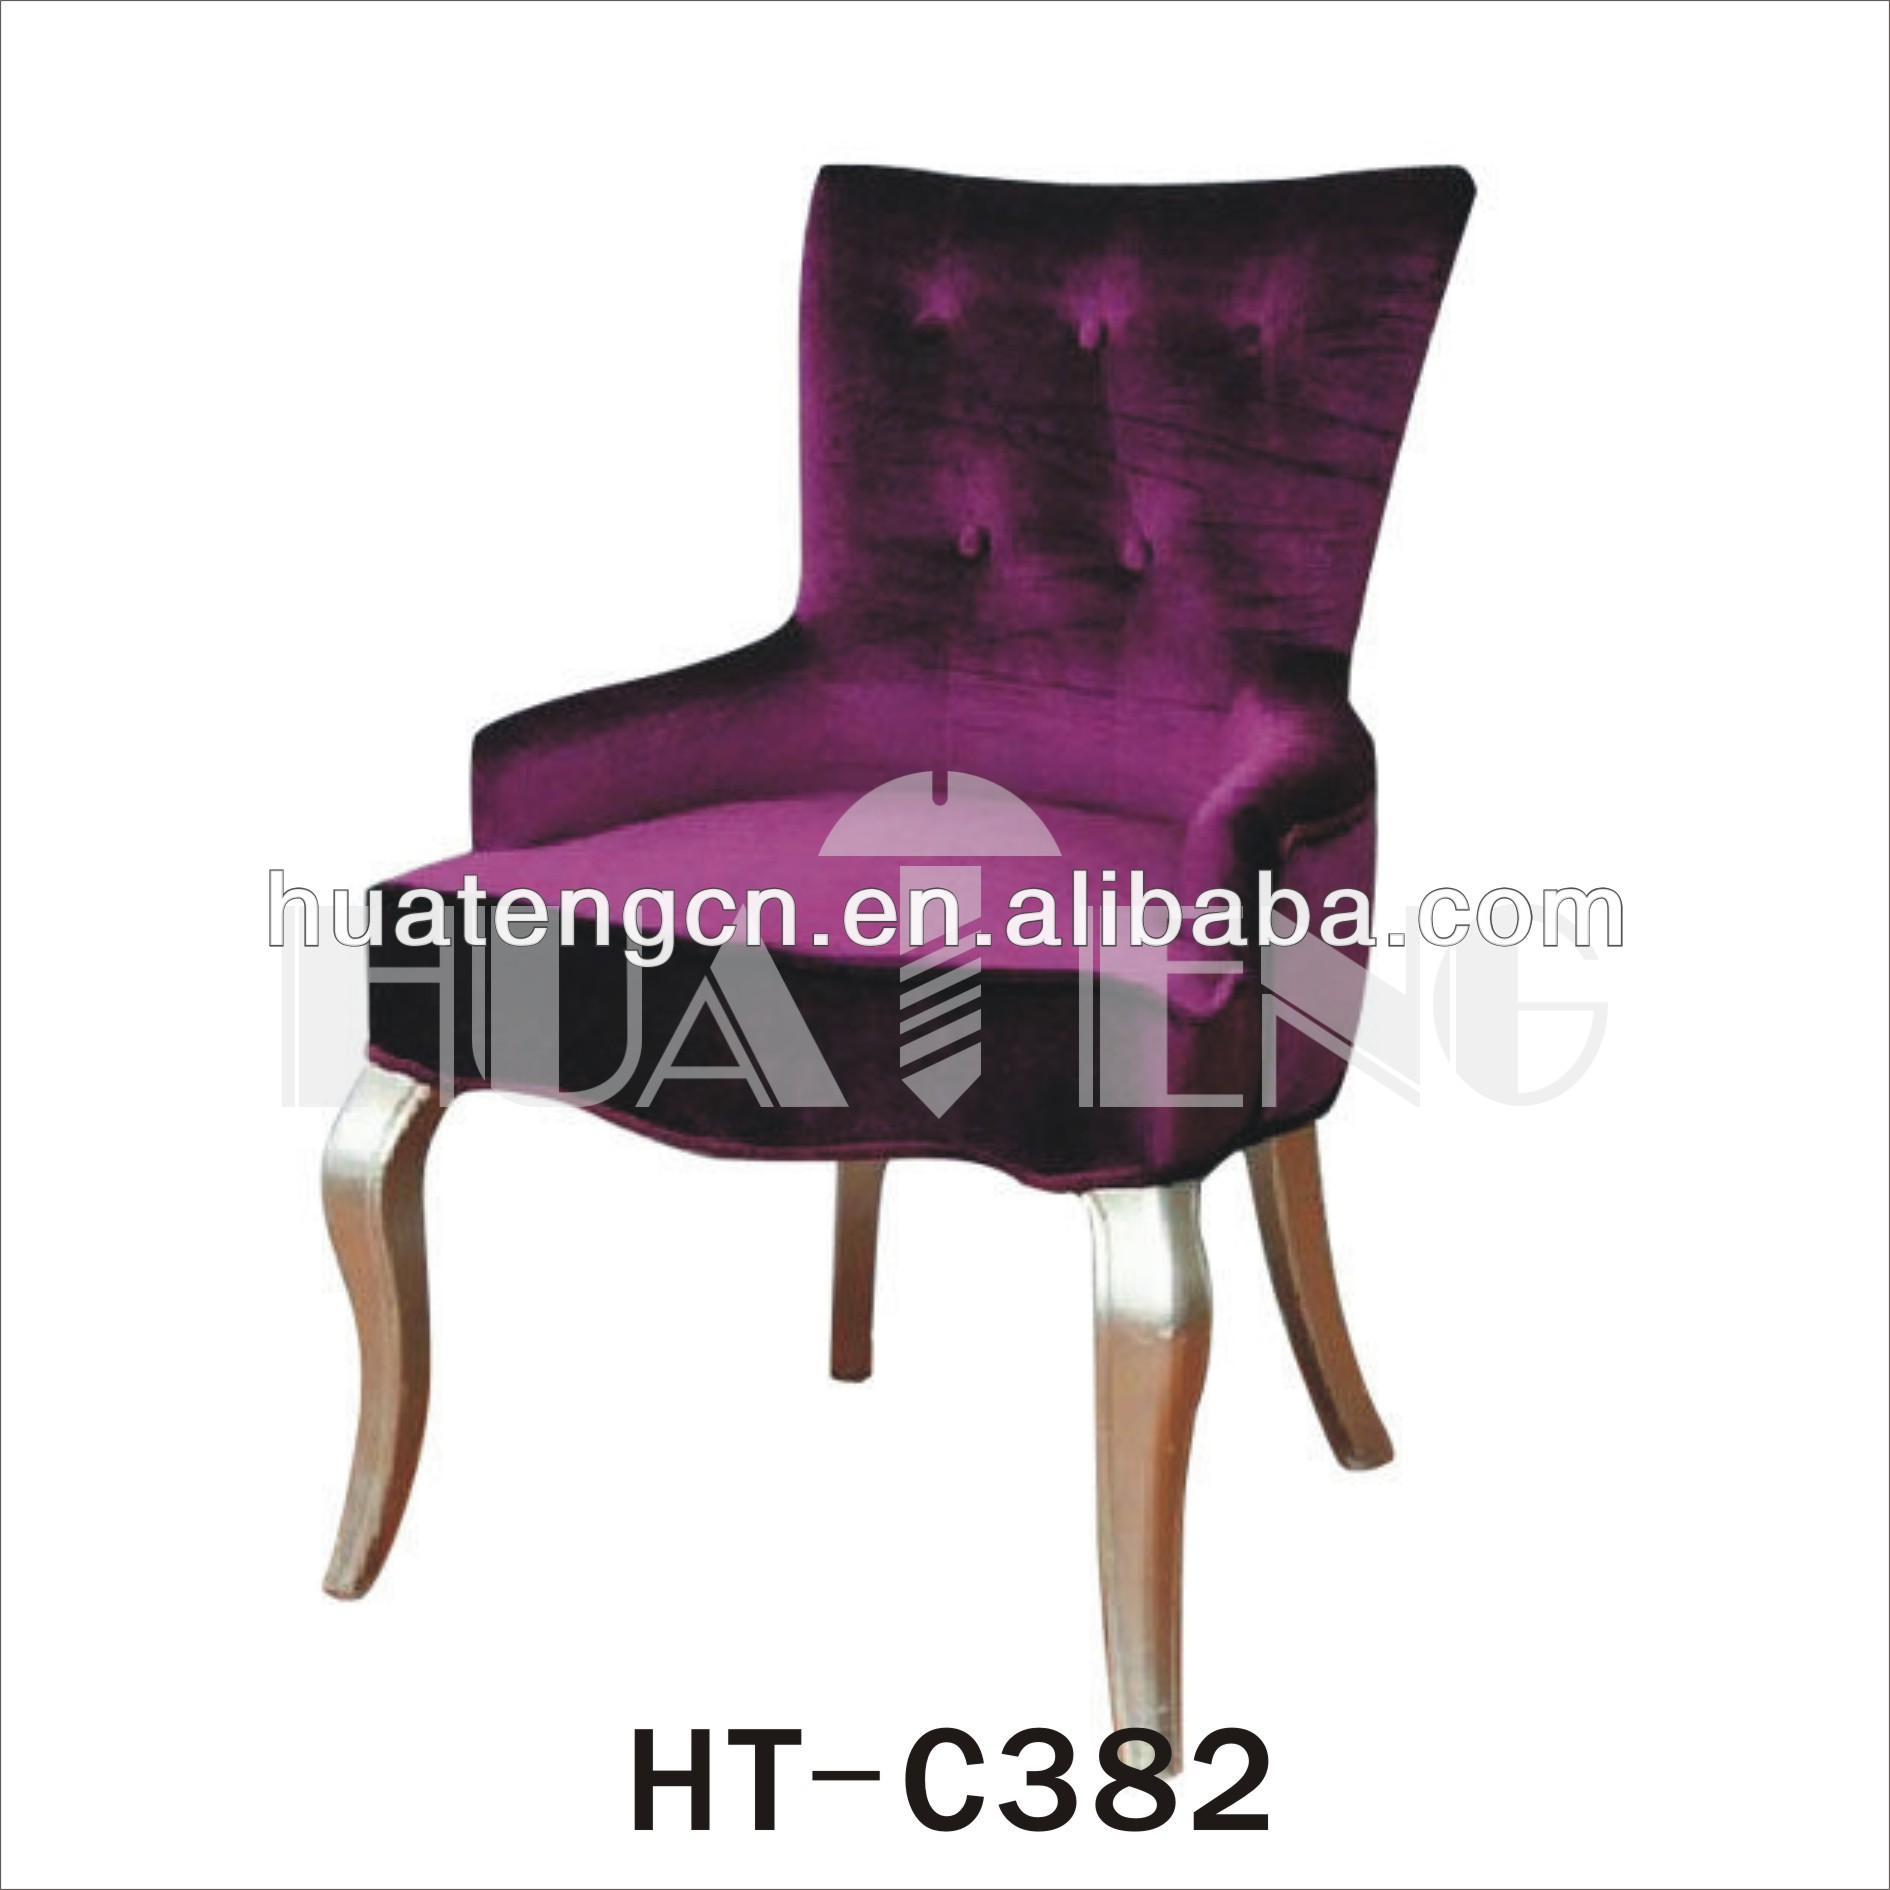 chaise salle manger mobilier de france. Black Bedroom Furniture Sets. Home Design Ideas